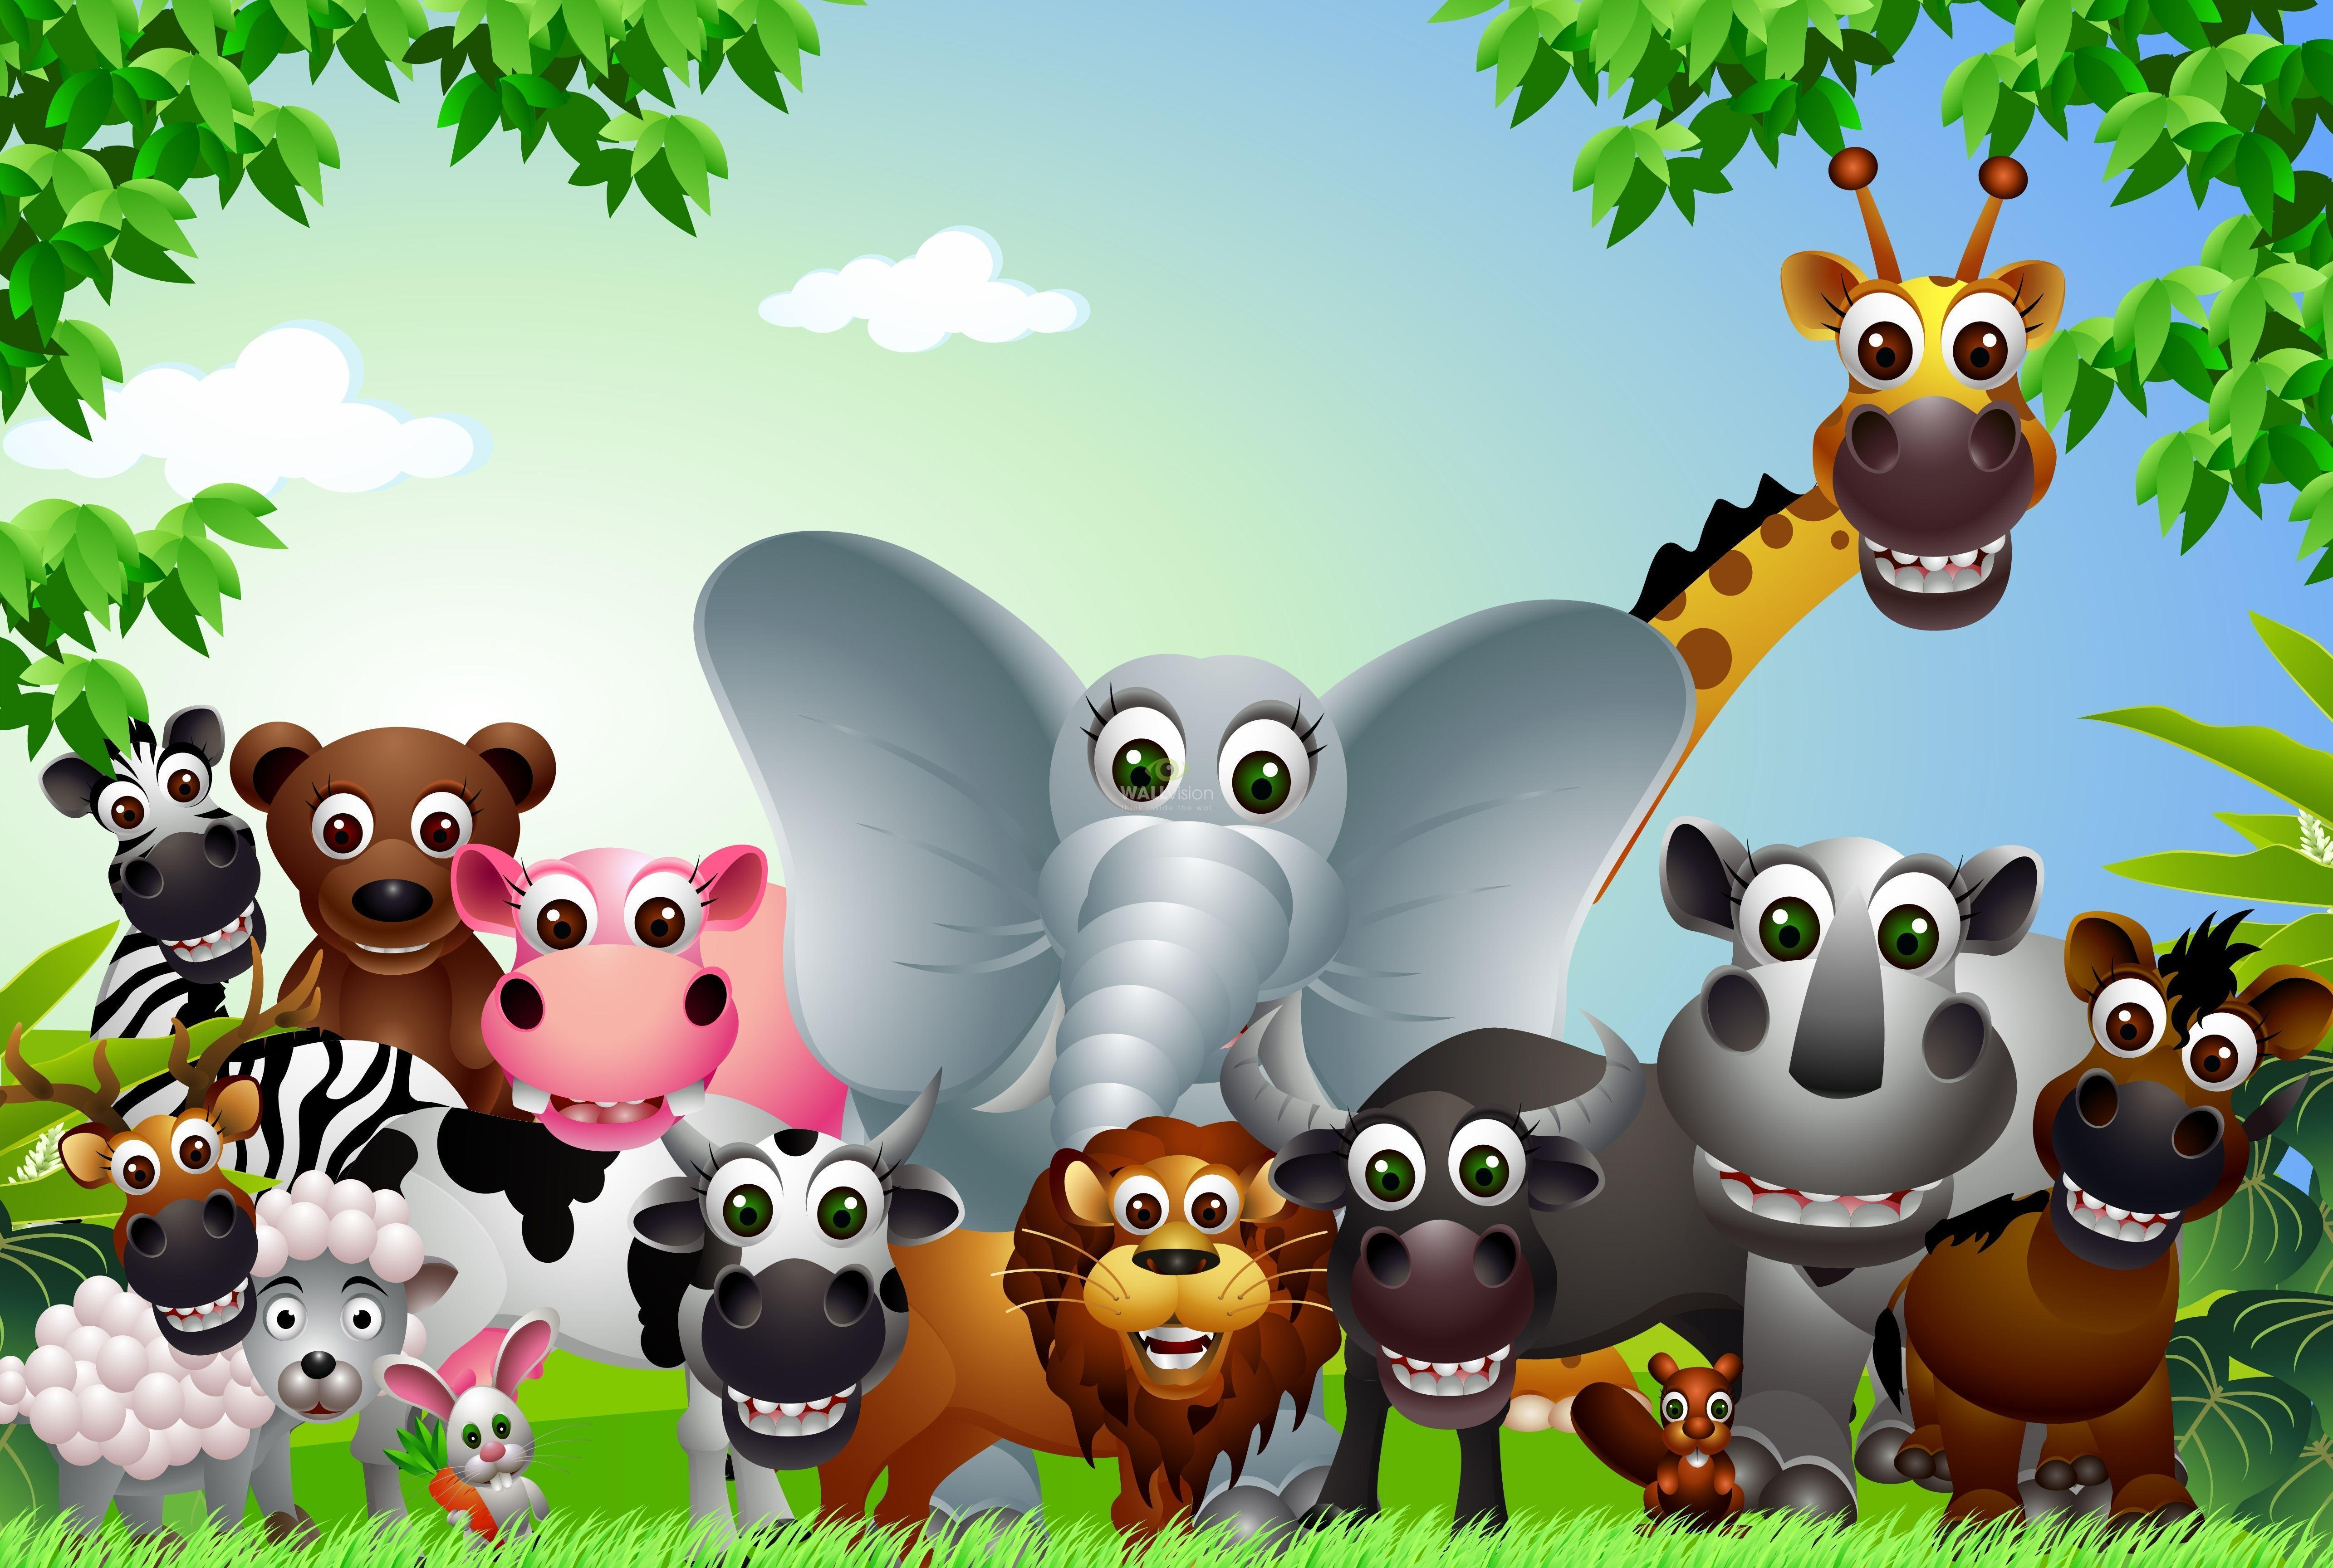 Cartoon animals wallpapers wallpaper cave - Moving animal wallpapers ...